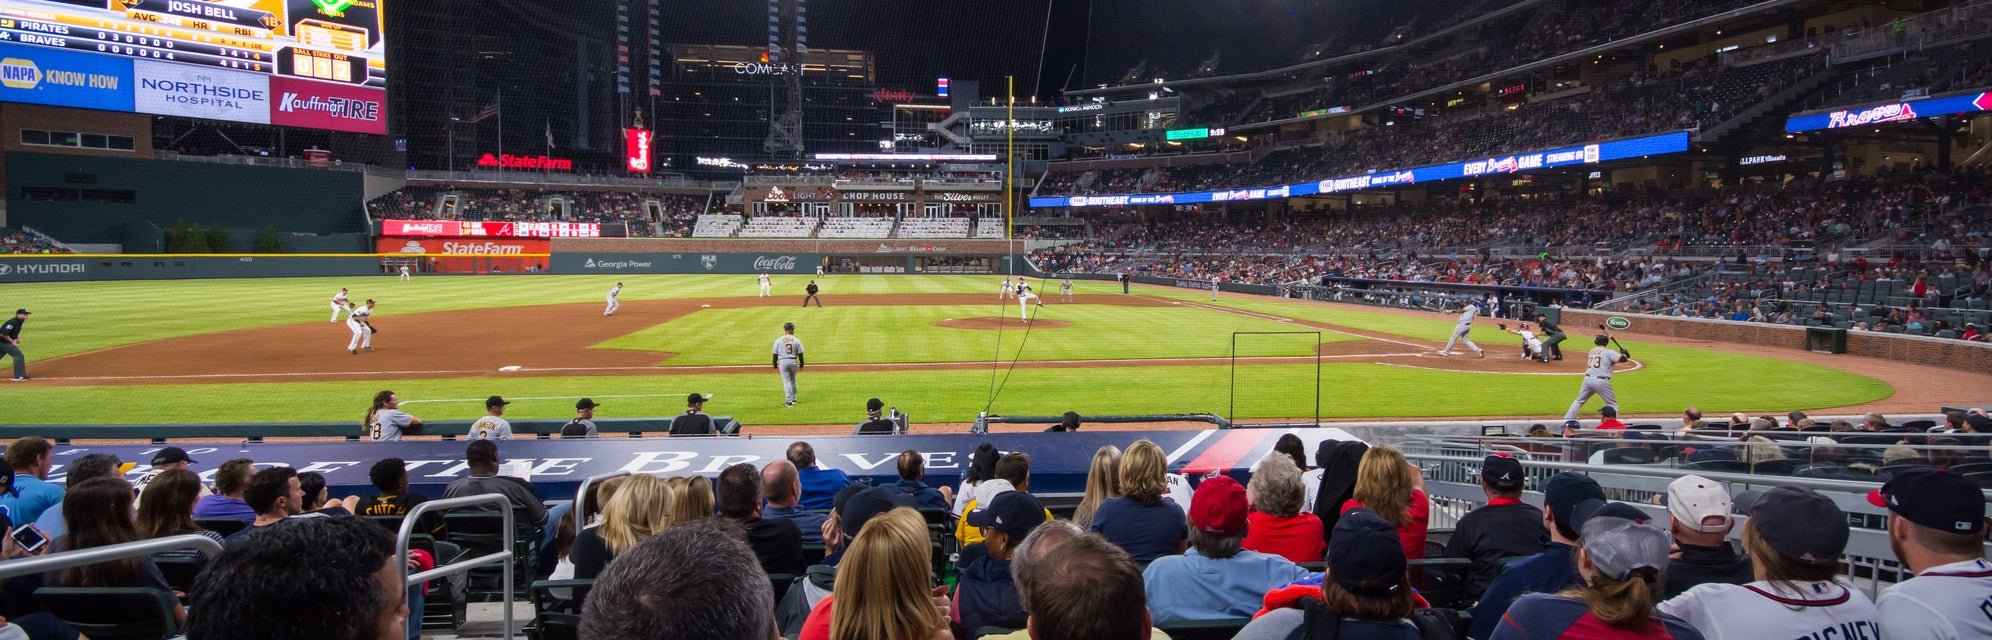 Seat view from Dugout Infield